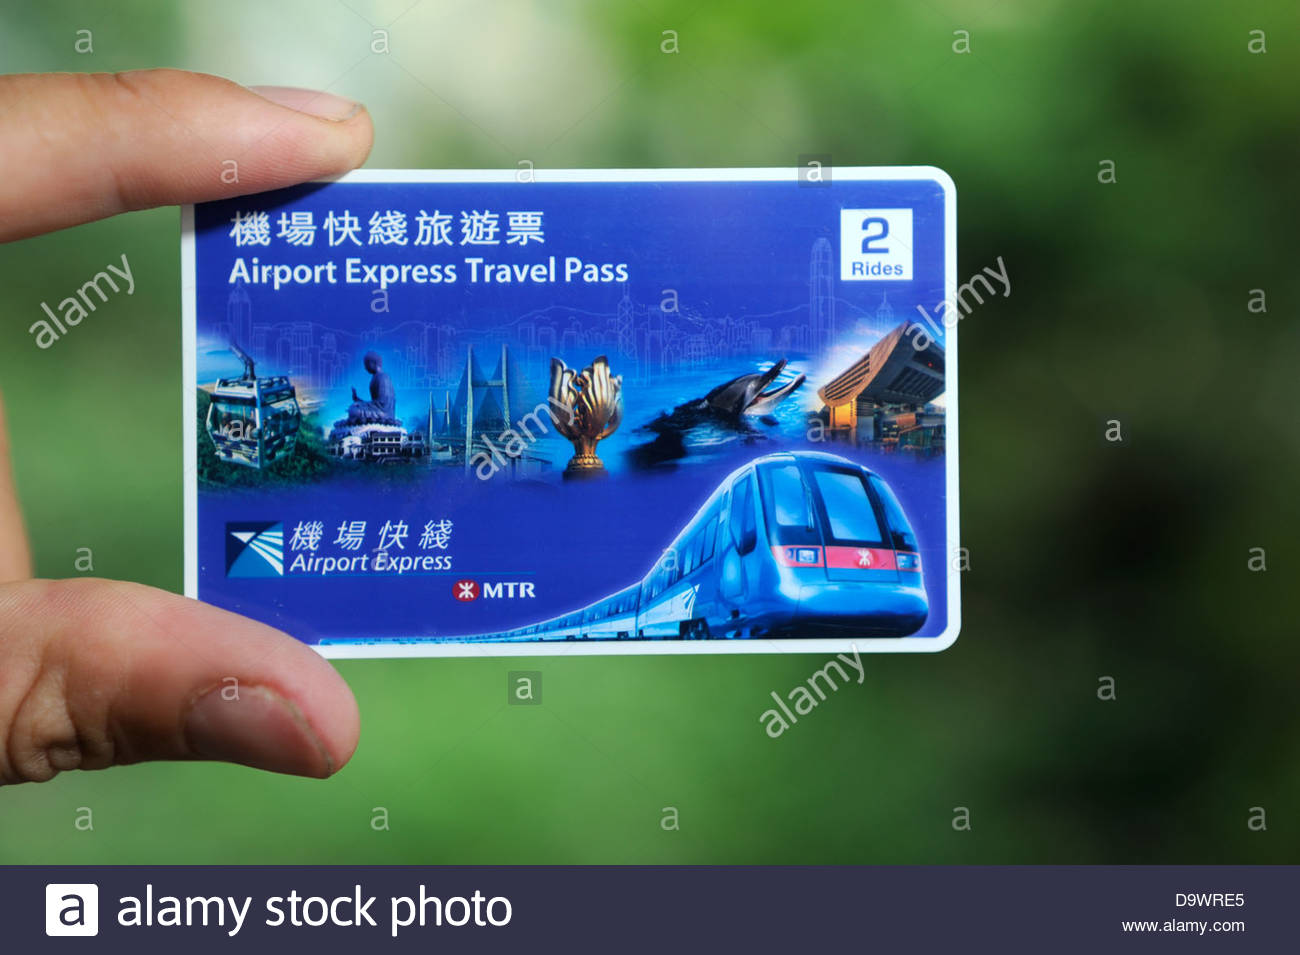 Hong Kong Airport express Travel Pass. Stockbild